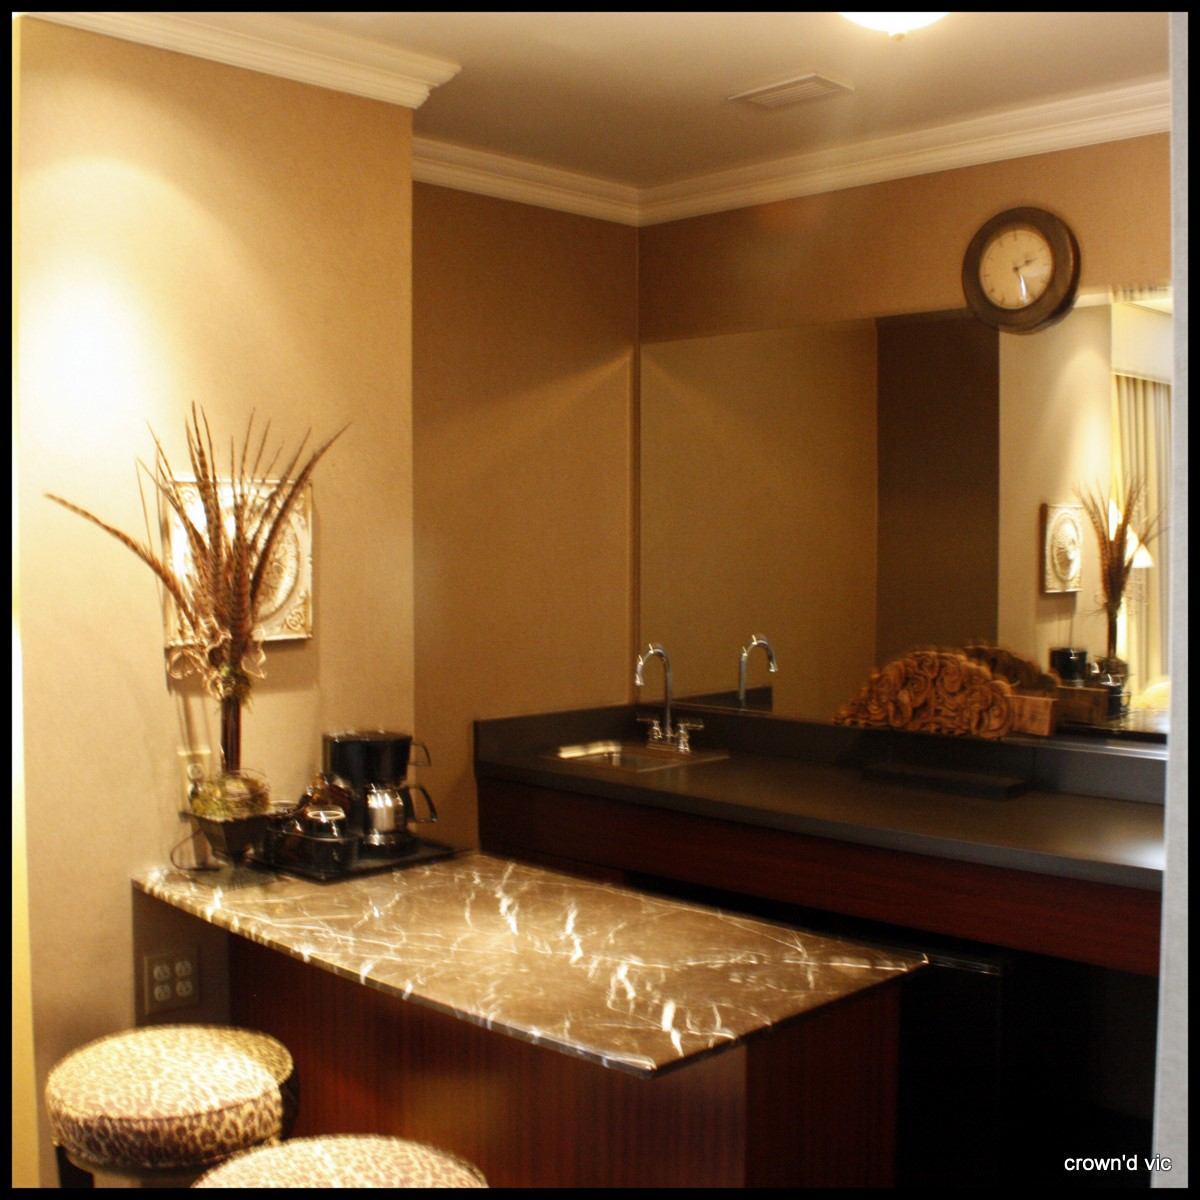 Hotels With Adjoining Rooms In Baton Rouge